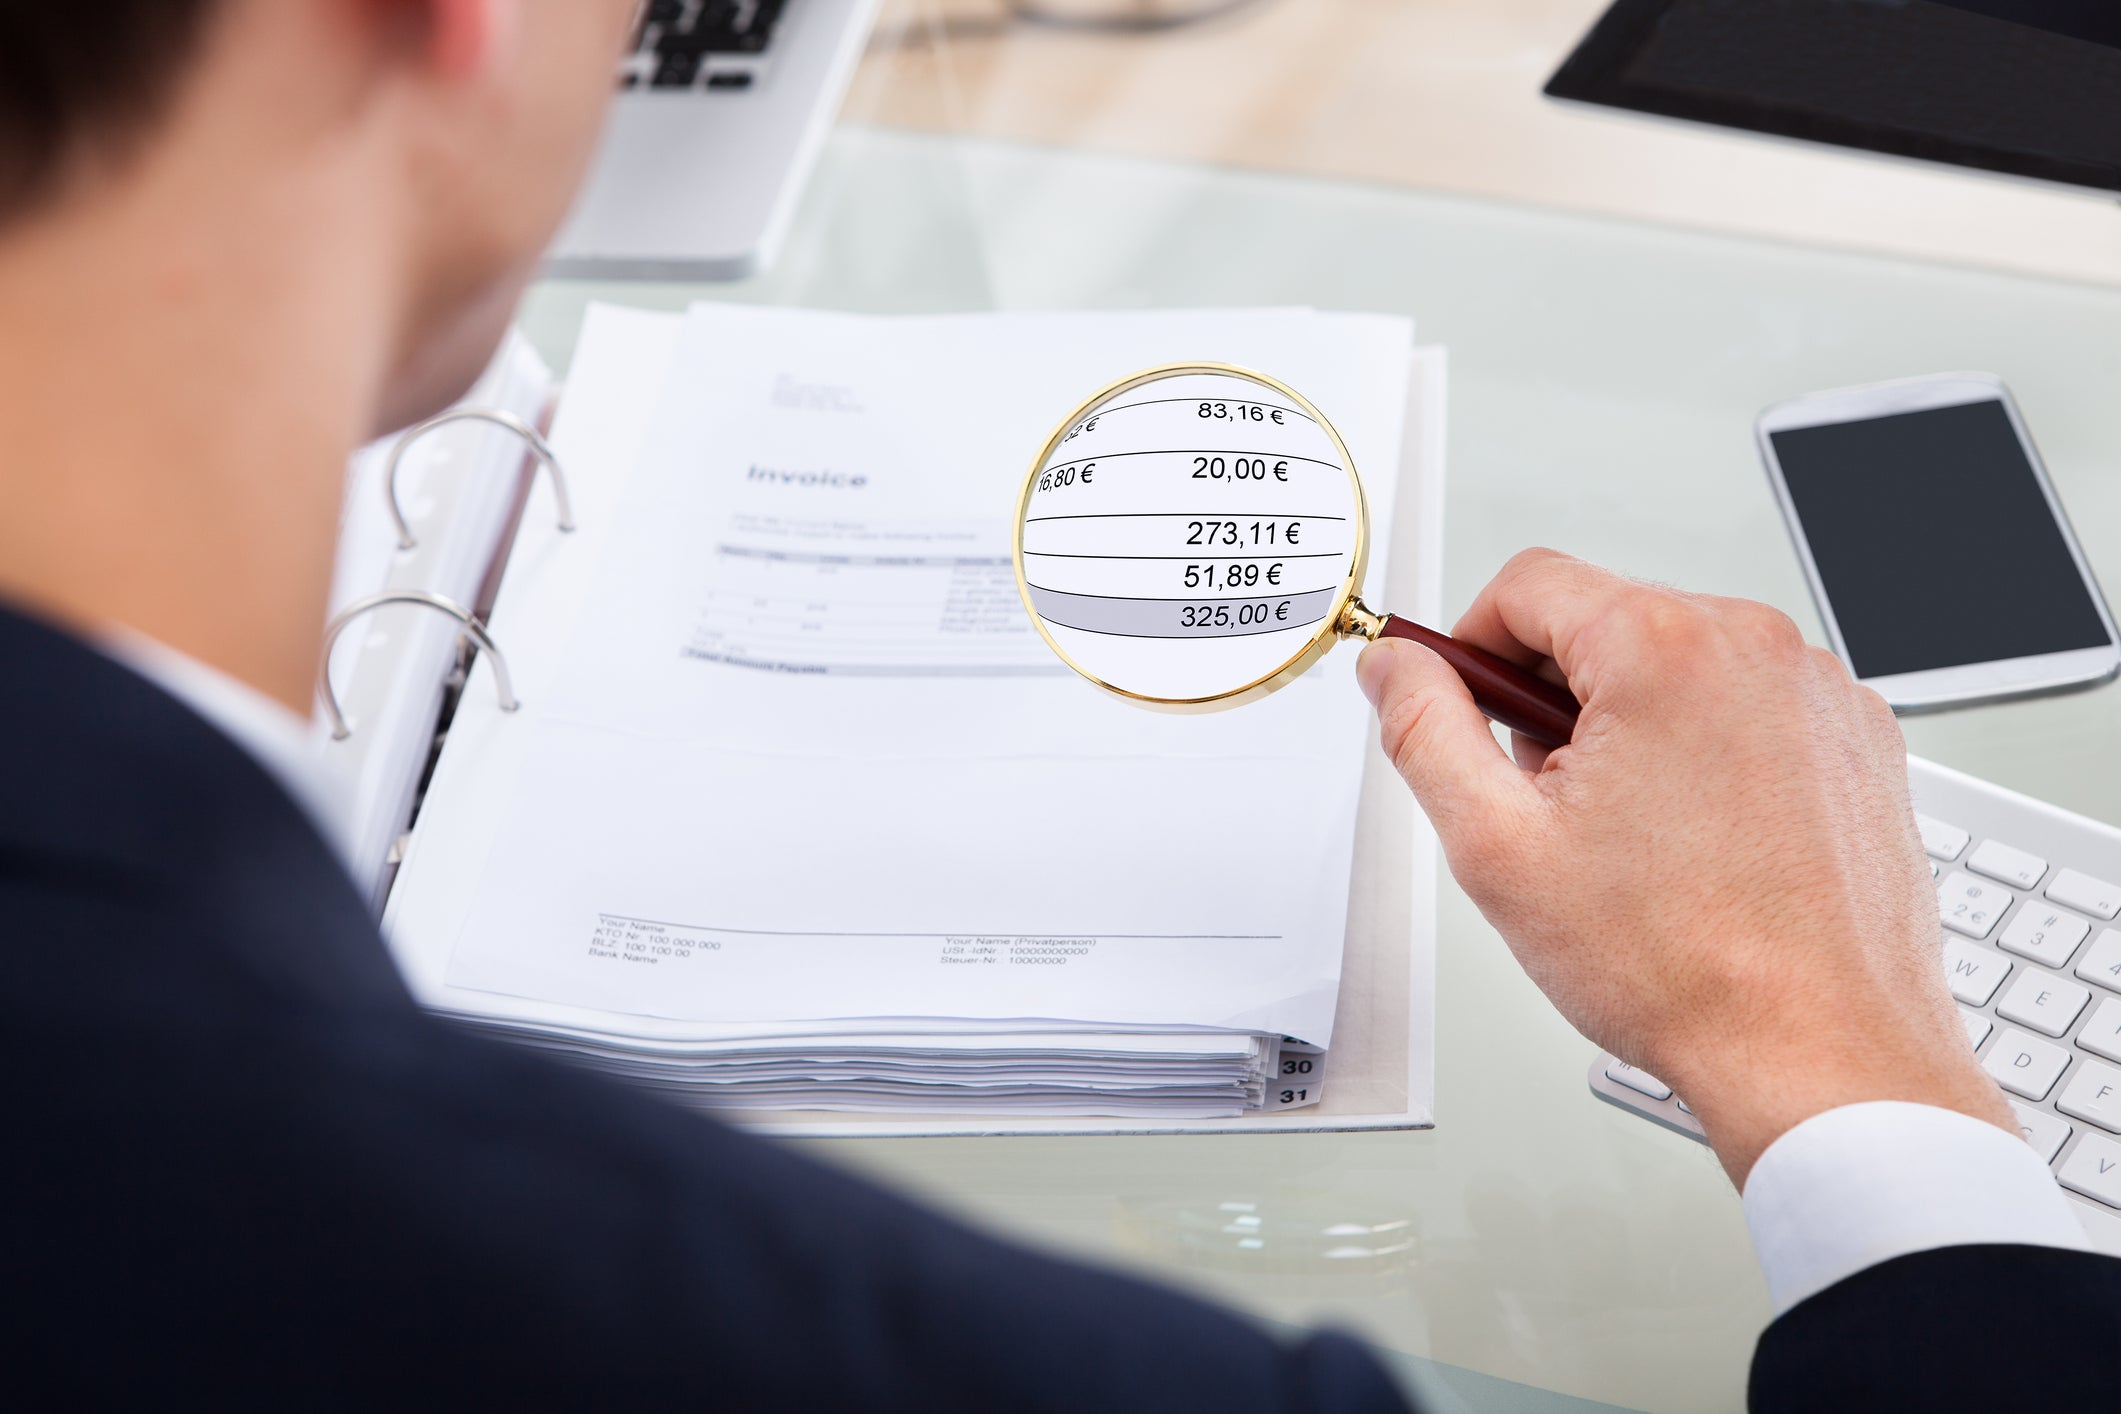 What Are Your Chances of Being Audited? -- The Motley Fool